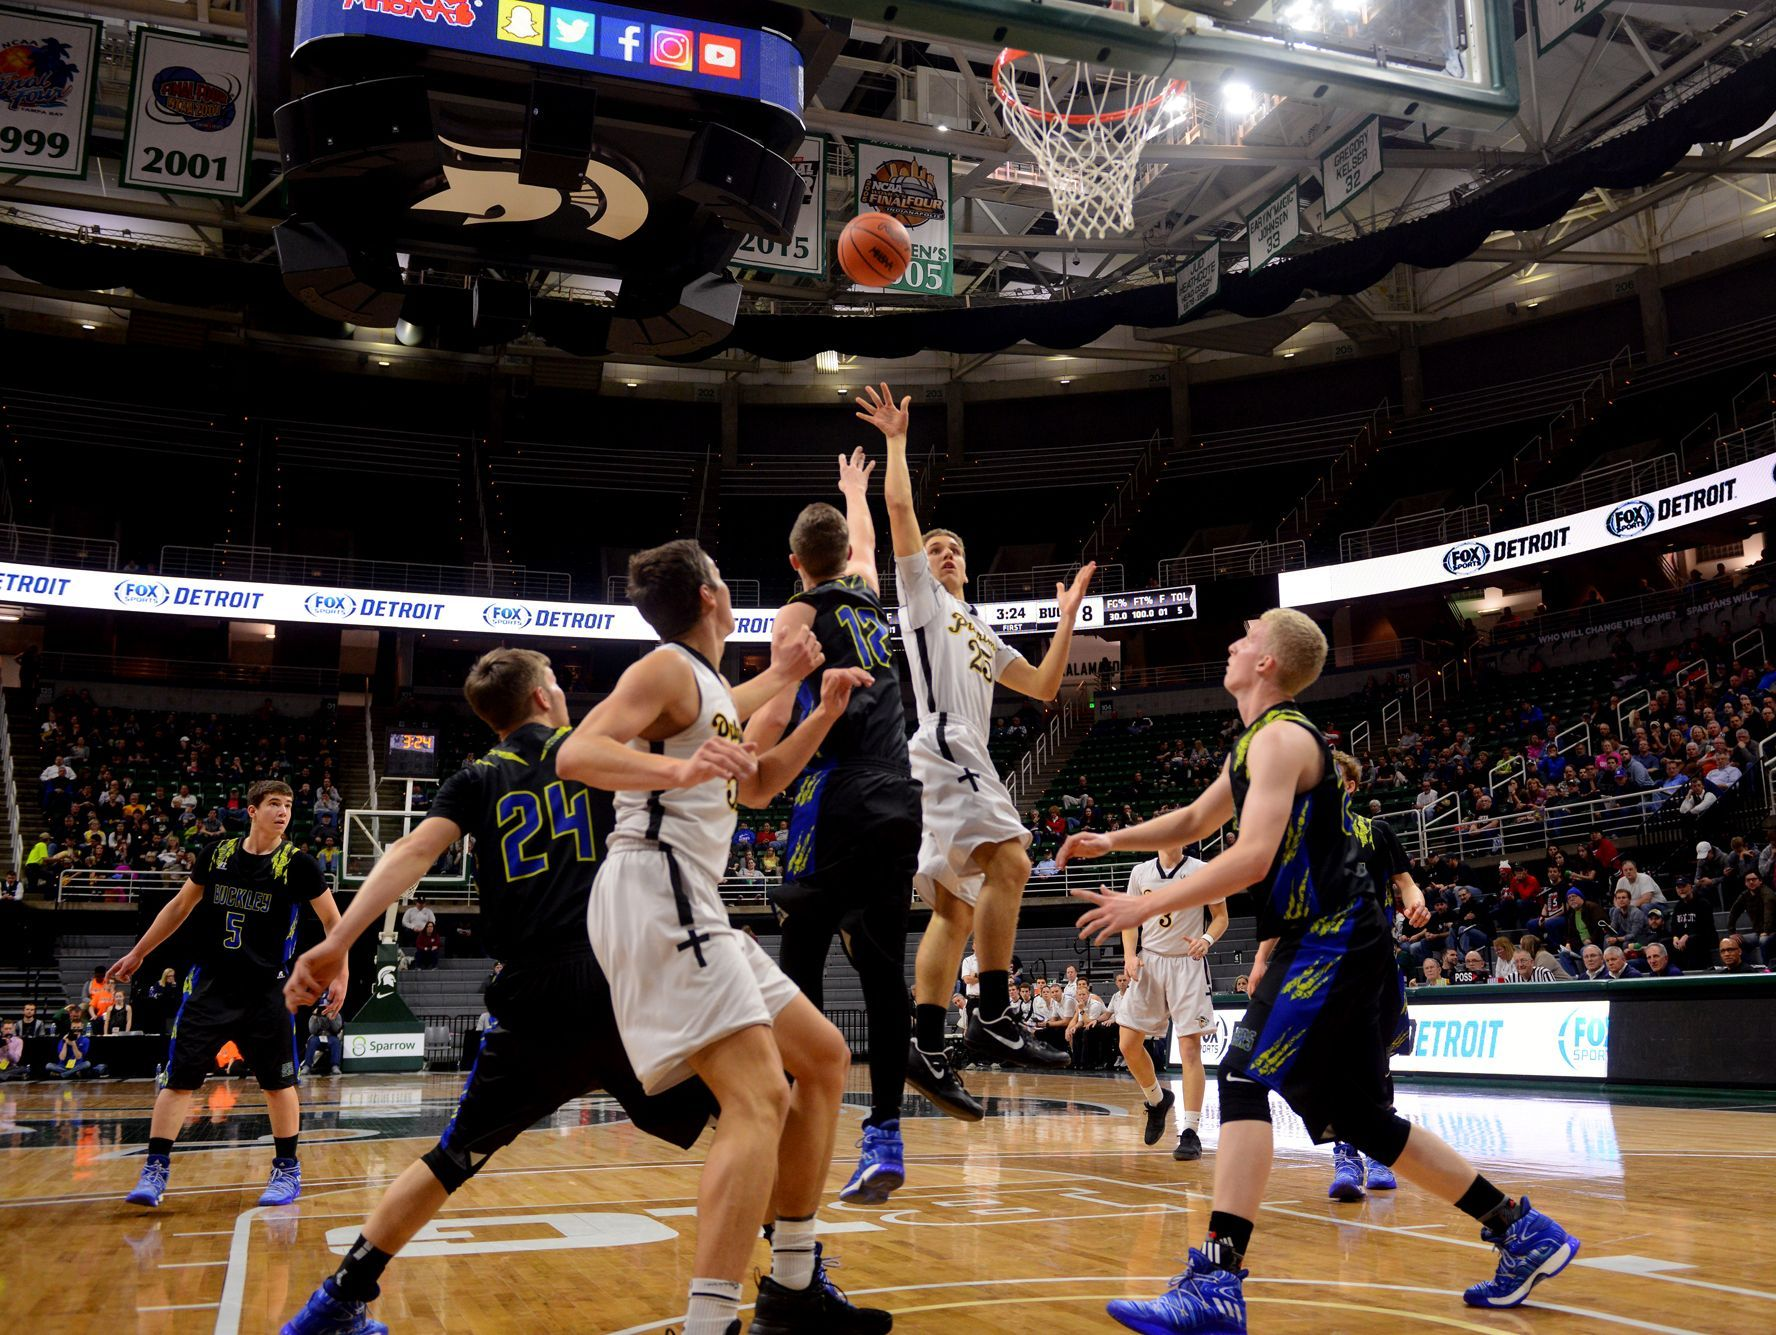 Lansing Christian's Andrew Prieskorn goes up for a shot during the Class D state semifinals against Buckley on Thursday, March 23, 2017 at the Breslin Center in East Lansing. Buckley won, 68-61.